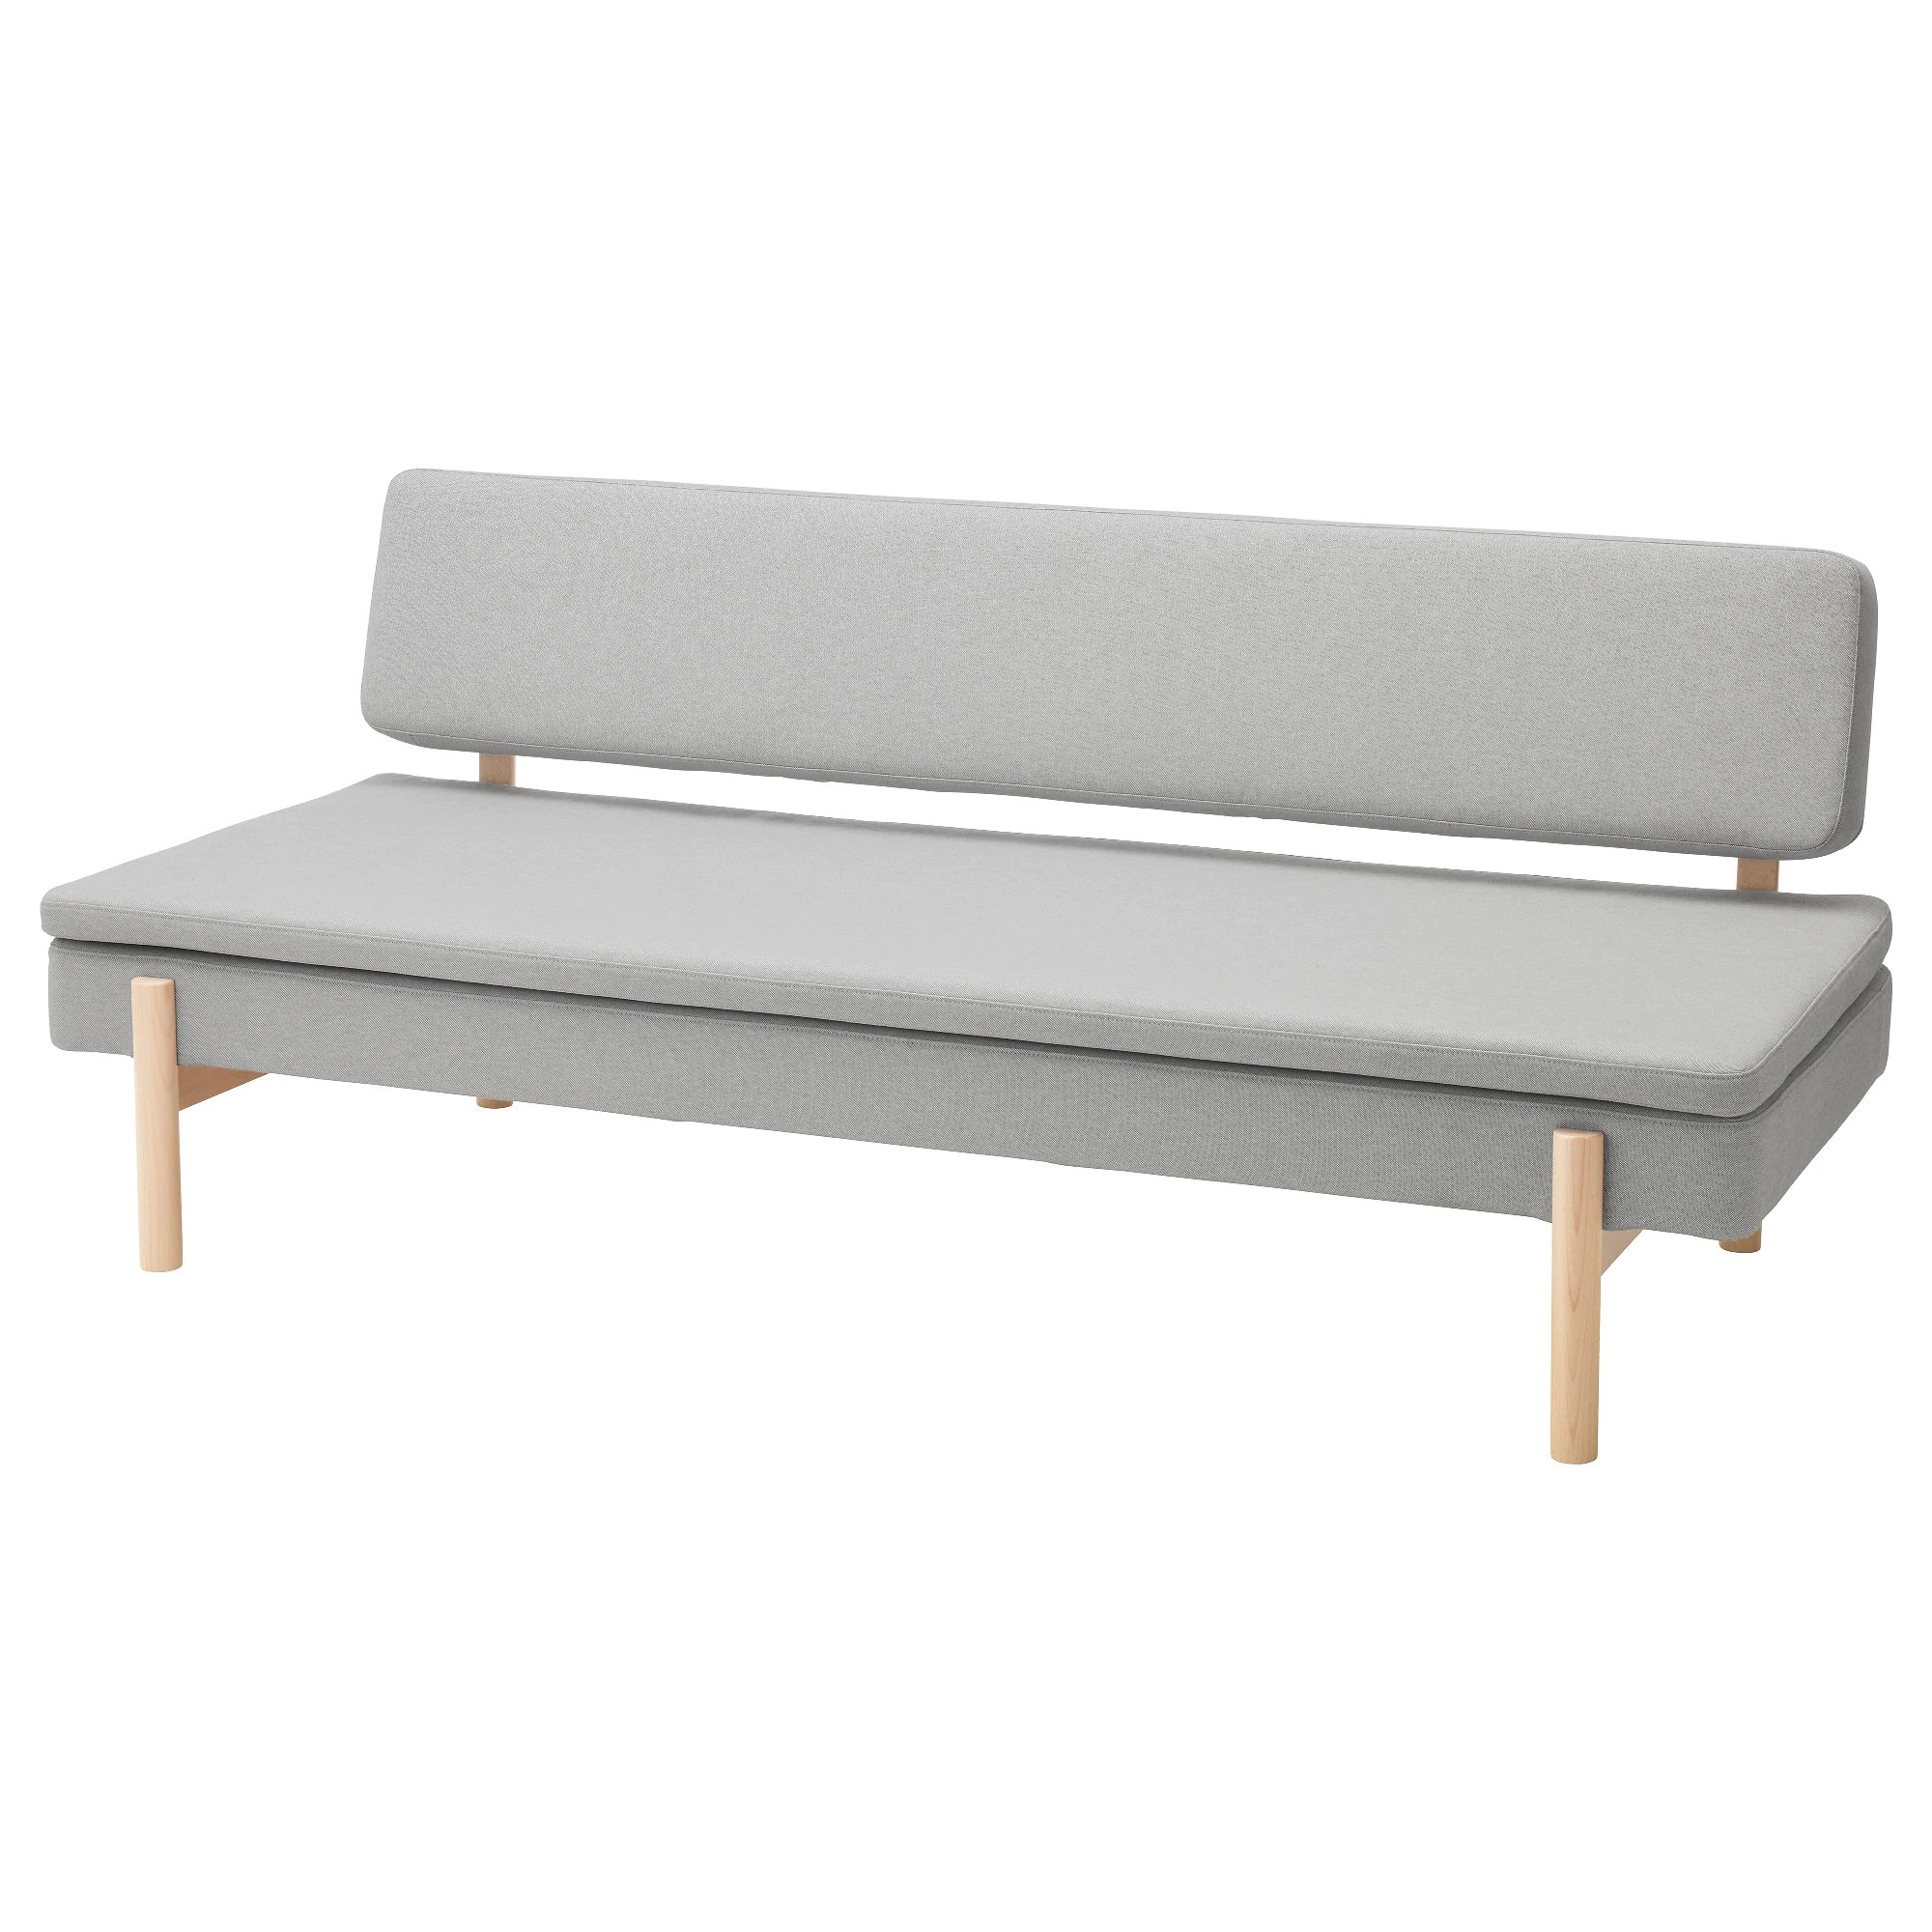 Klassische Sofas You Can Assemble Ypperlig 3 Seat Sleeper Sofa Orrsta Light Gray